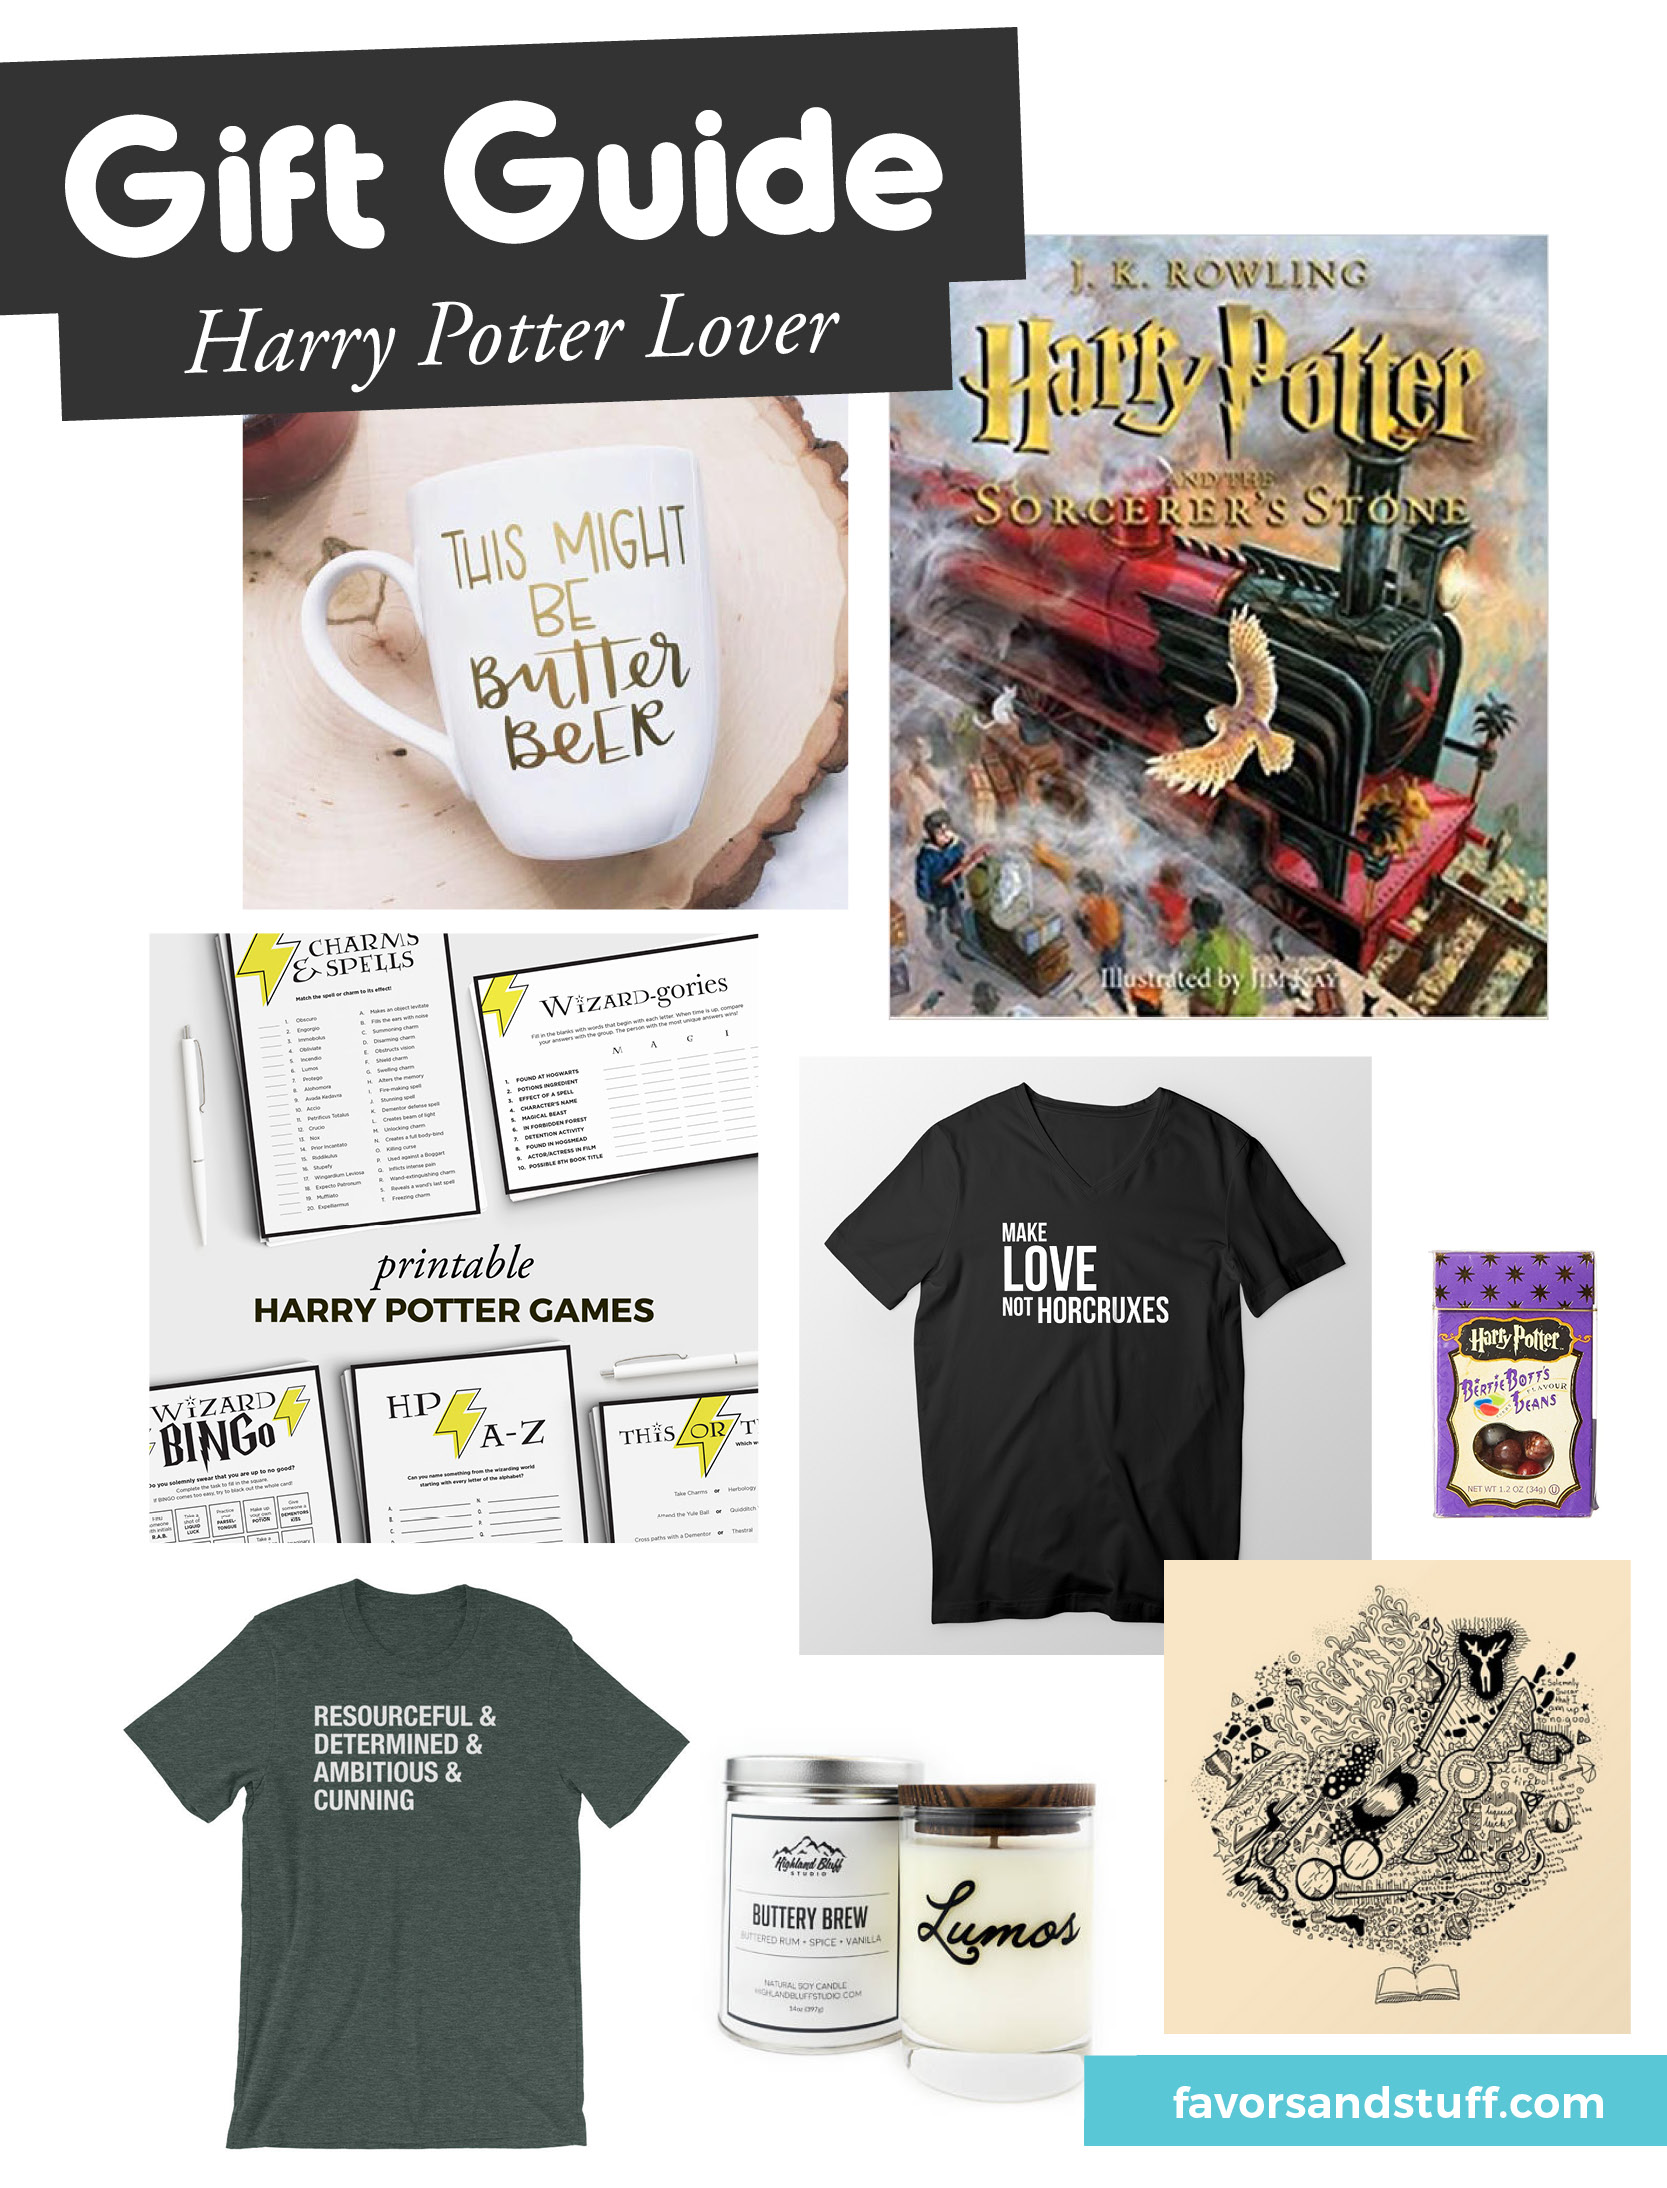 8 gift ideas for Harry Potter lovers